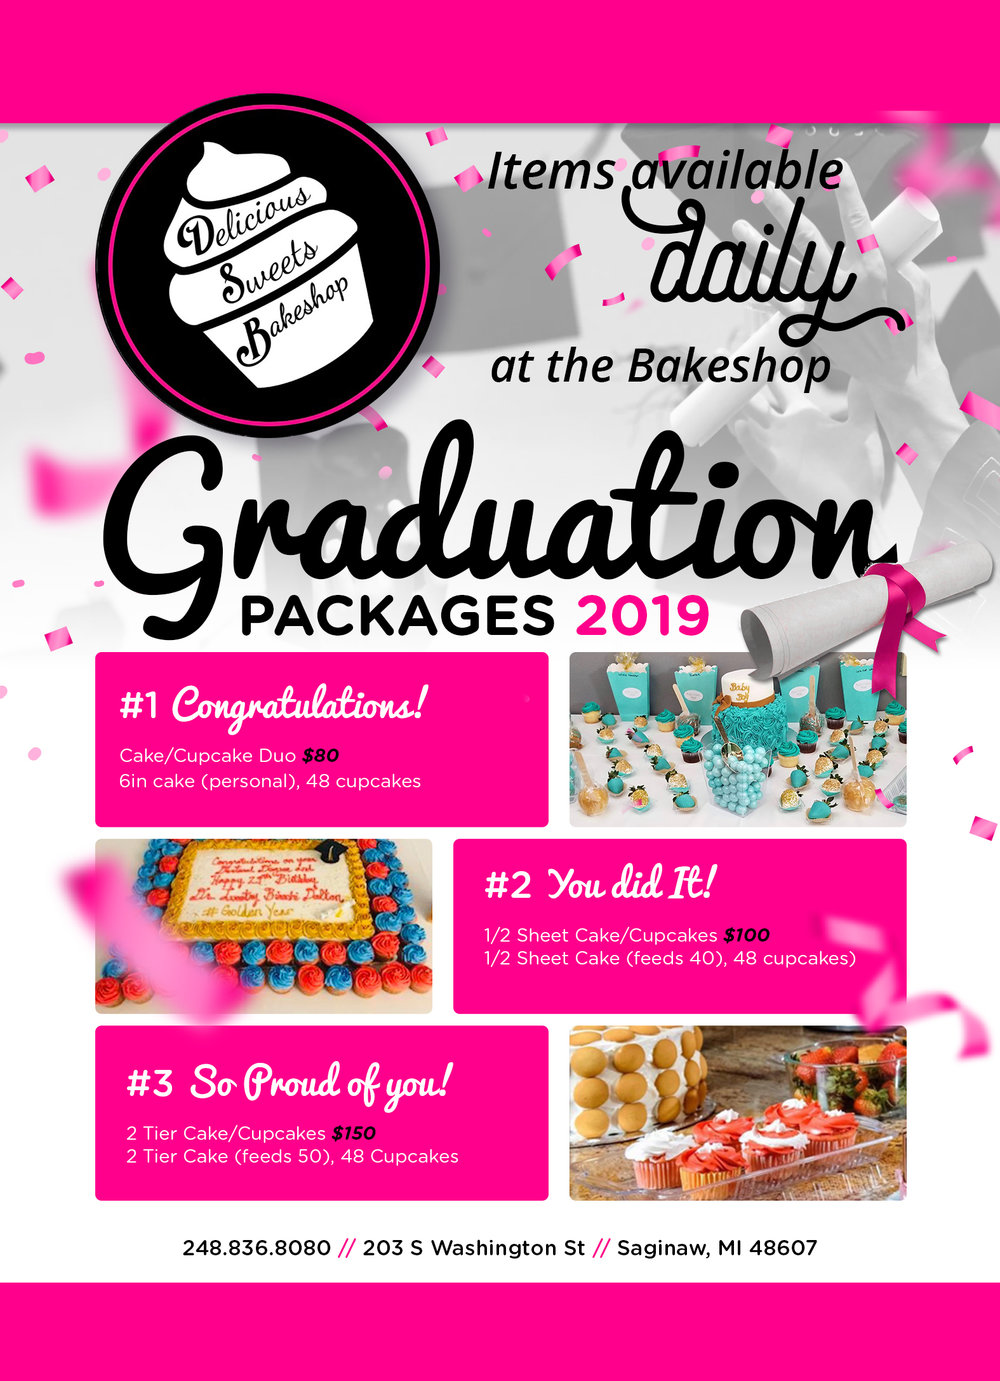 Delicious Sweets Graduation Packages_Pg1.jpg